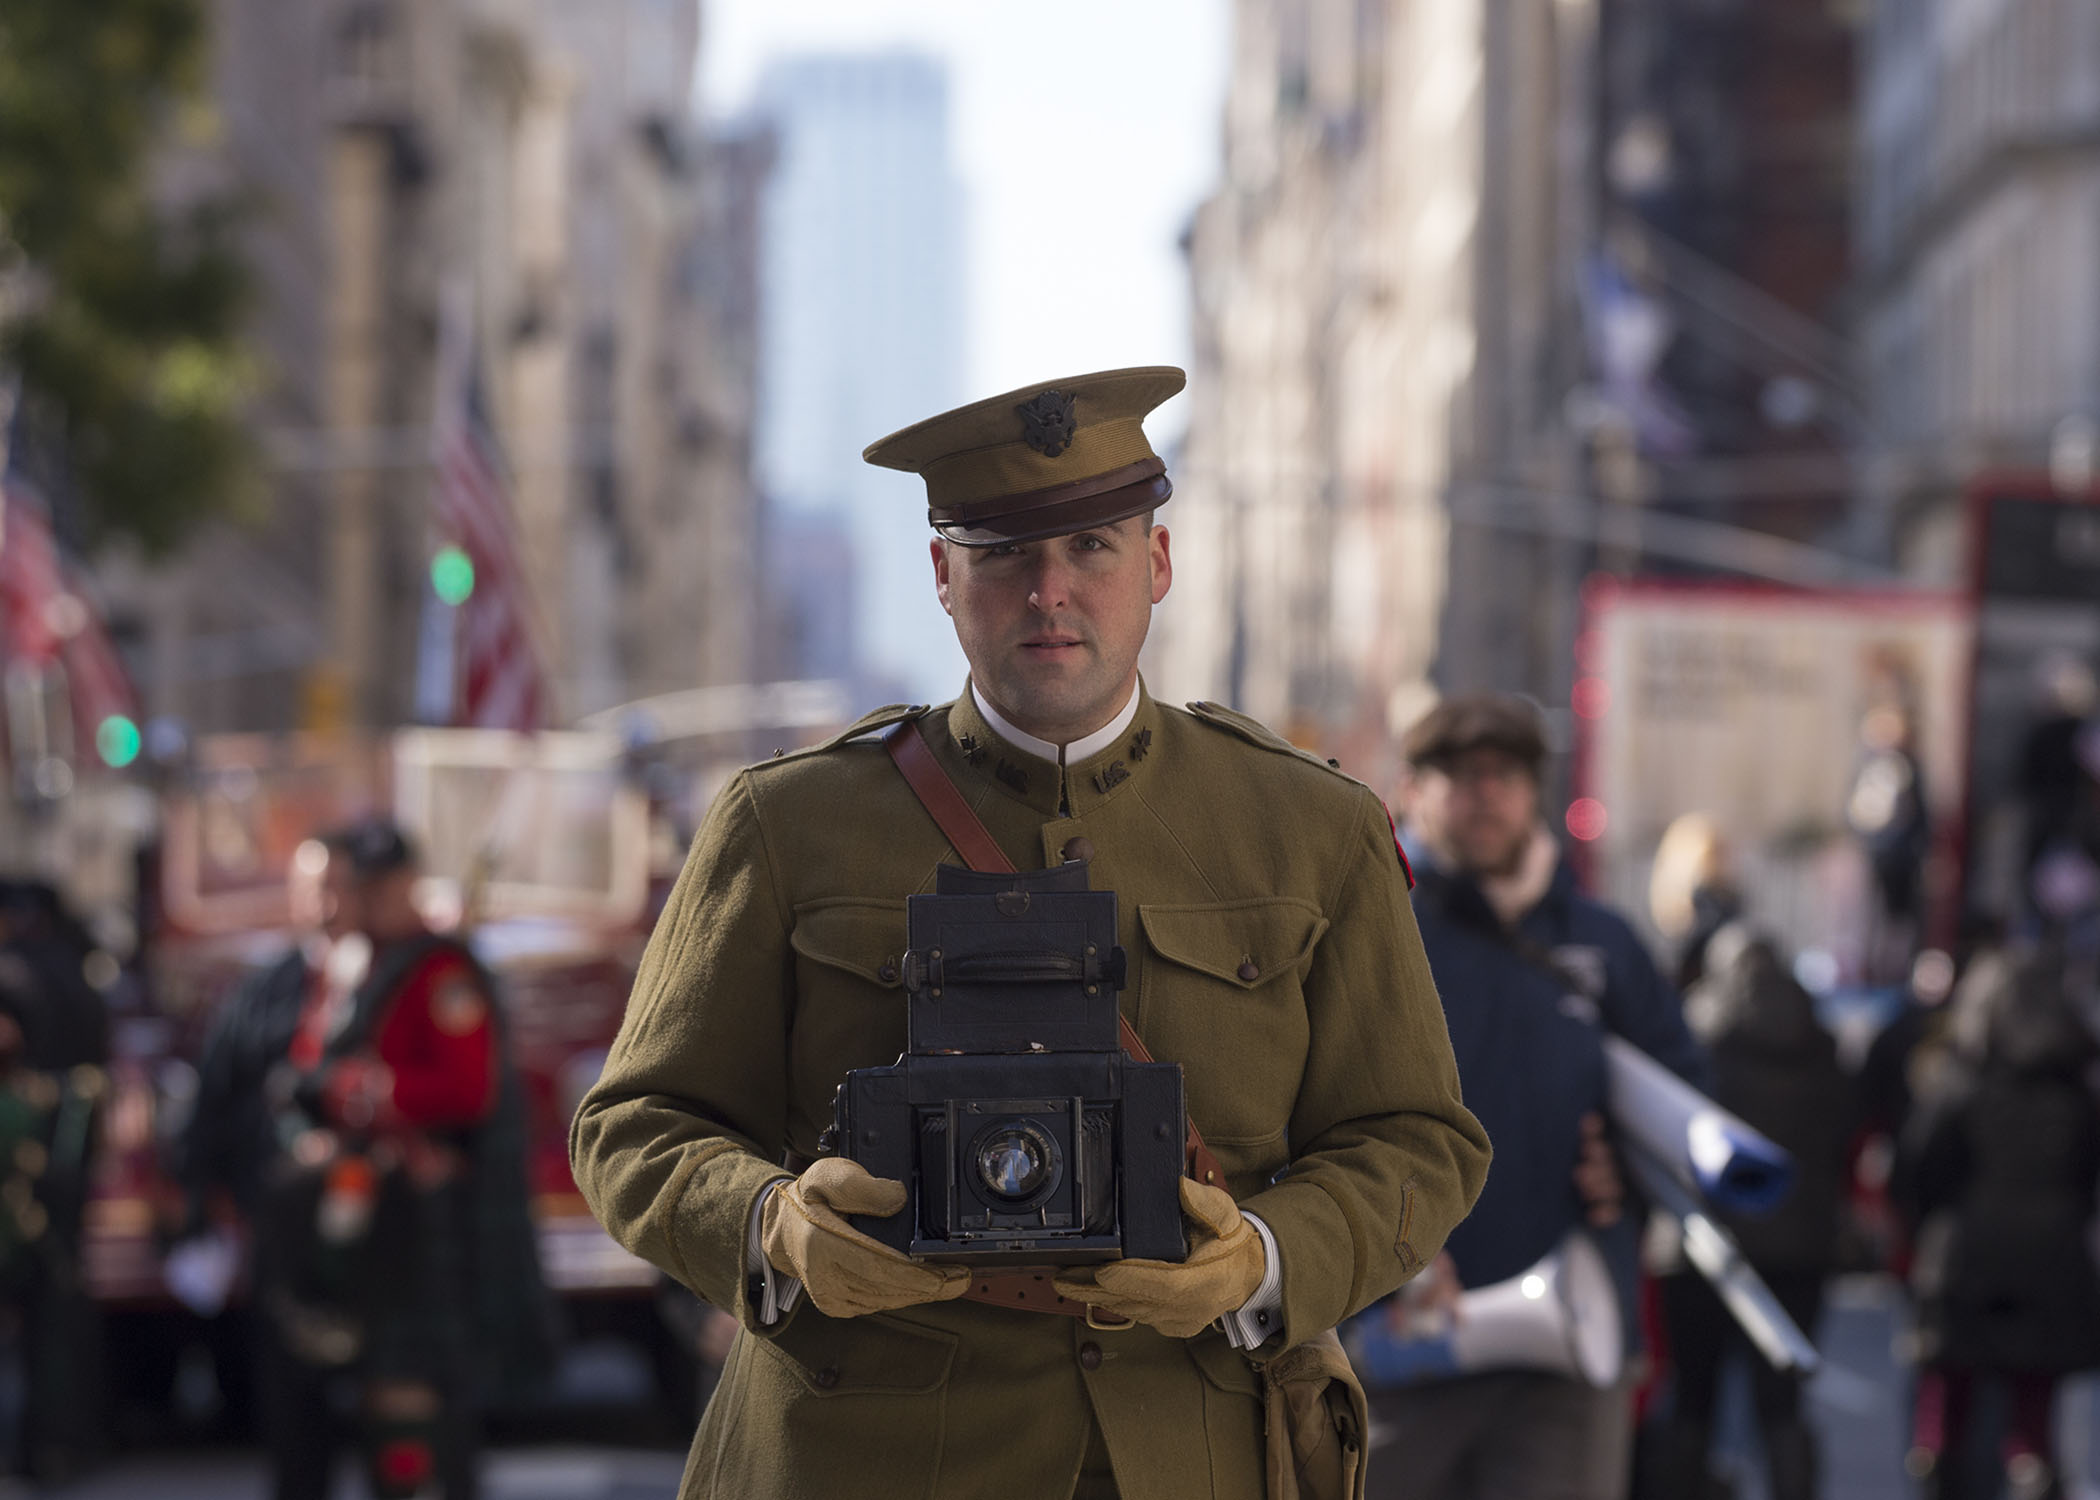 Person in hisortic uniform holding a vintage camera